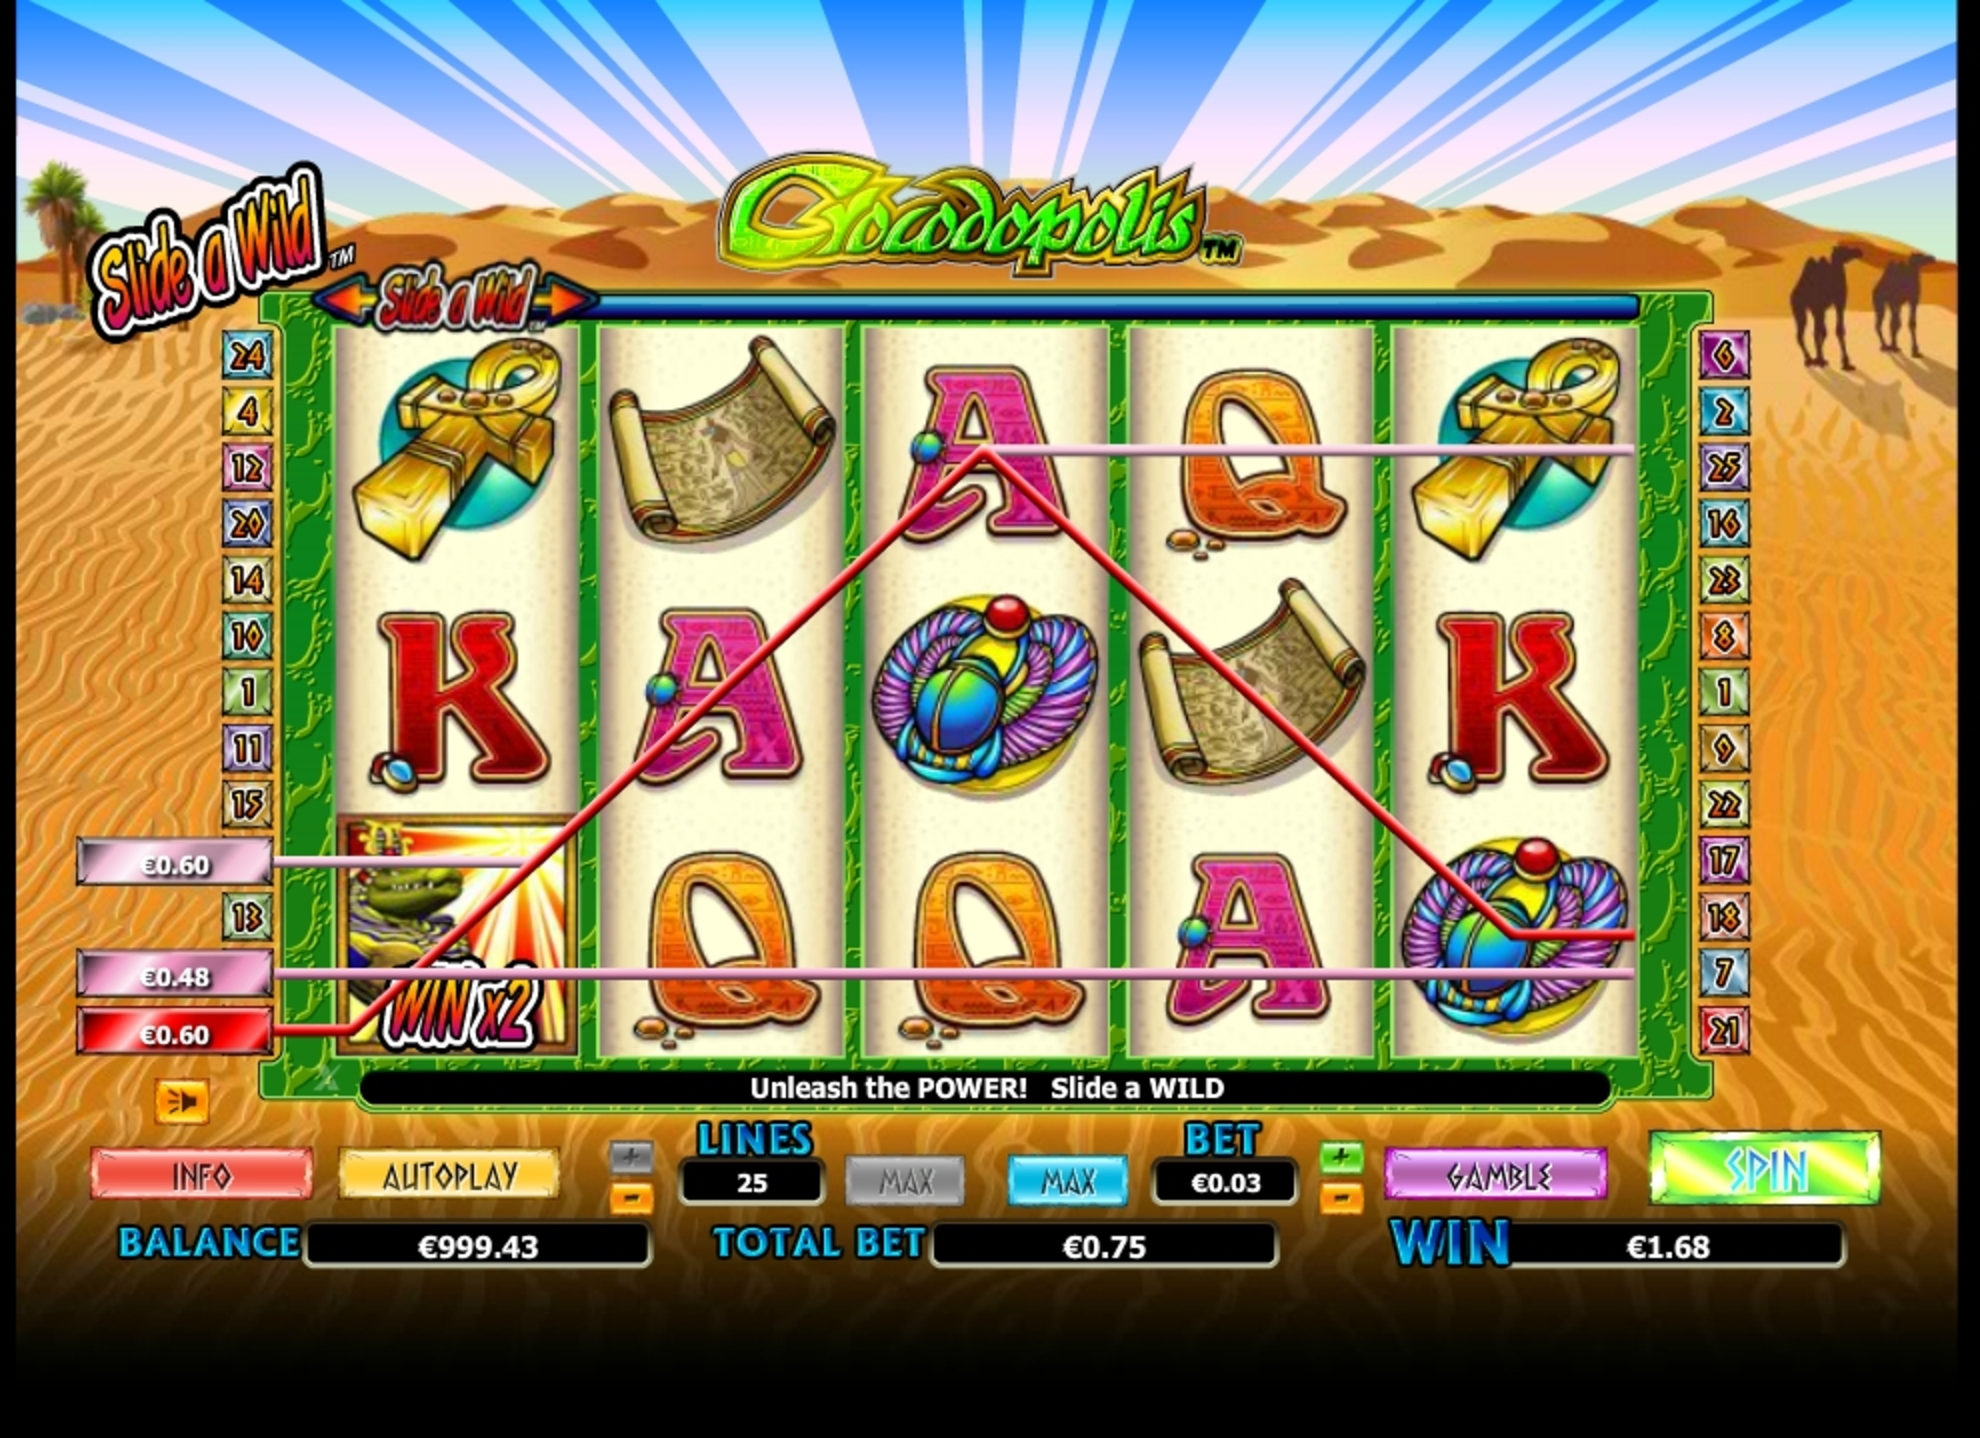 Win Money in Crocodopolis Free Slot Game by NextGen